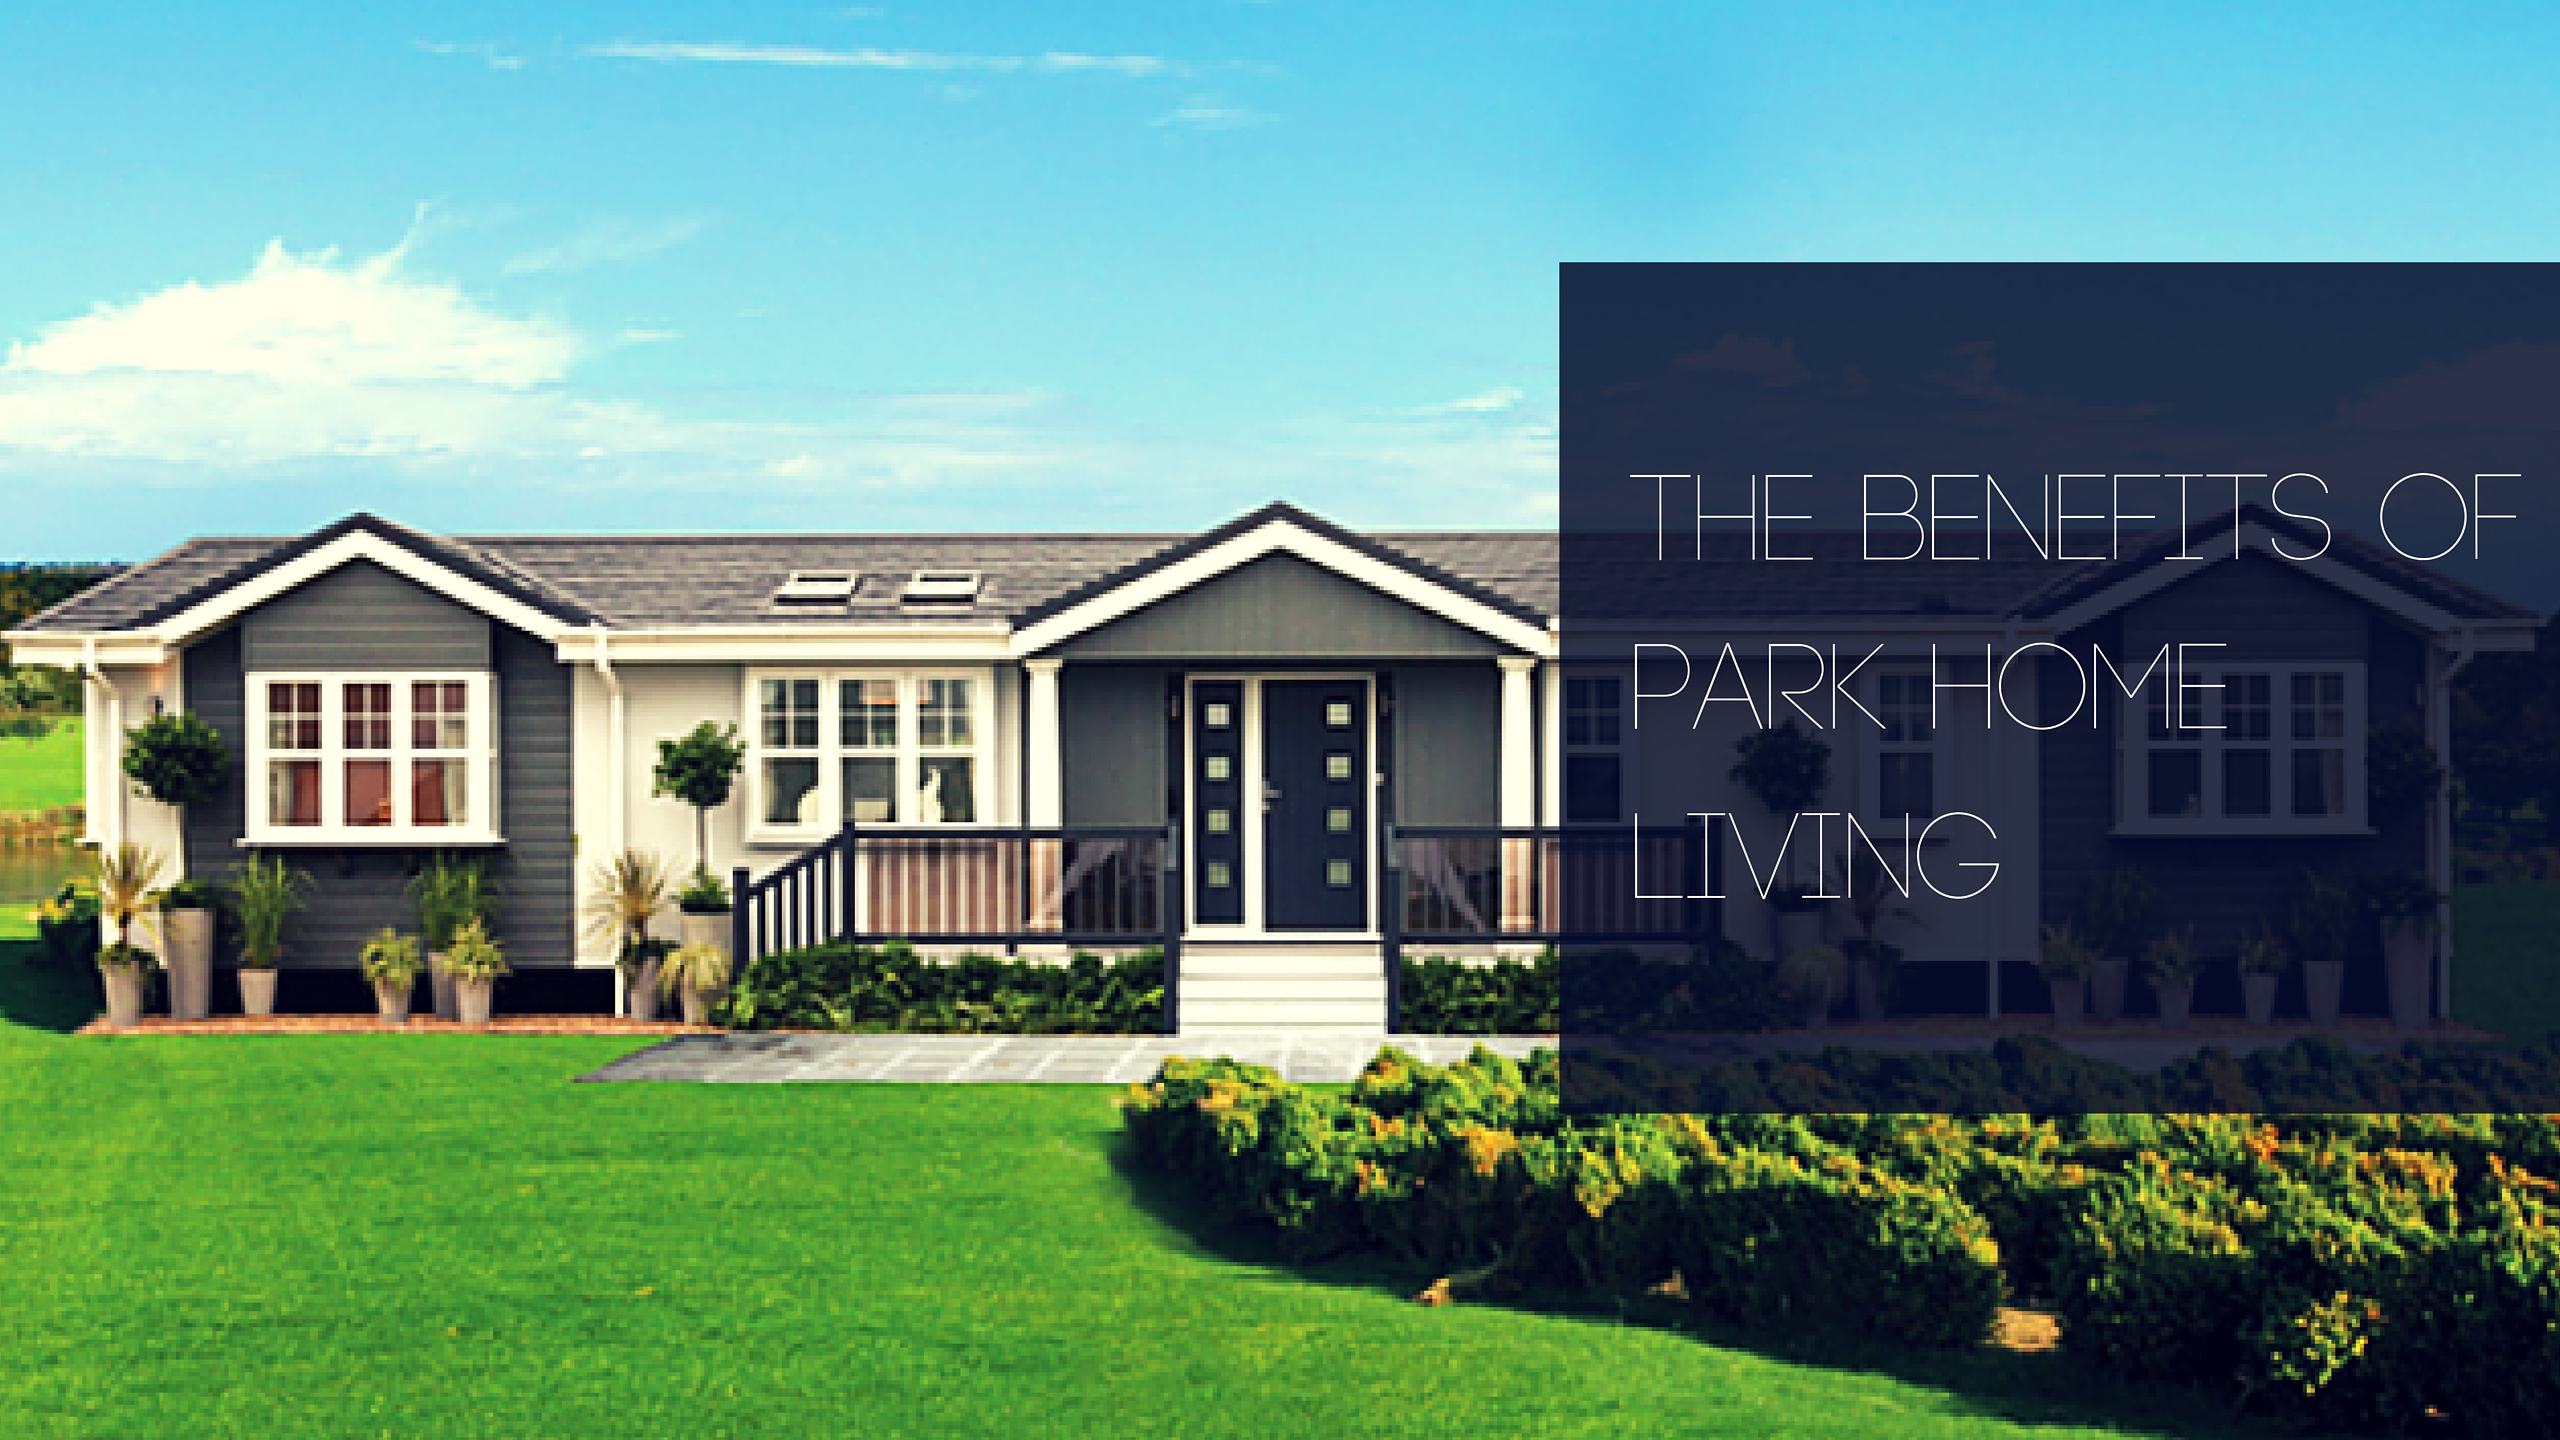 The Benefits Of Park Home Living